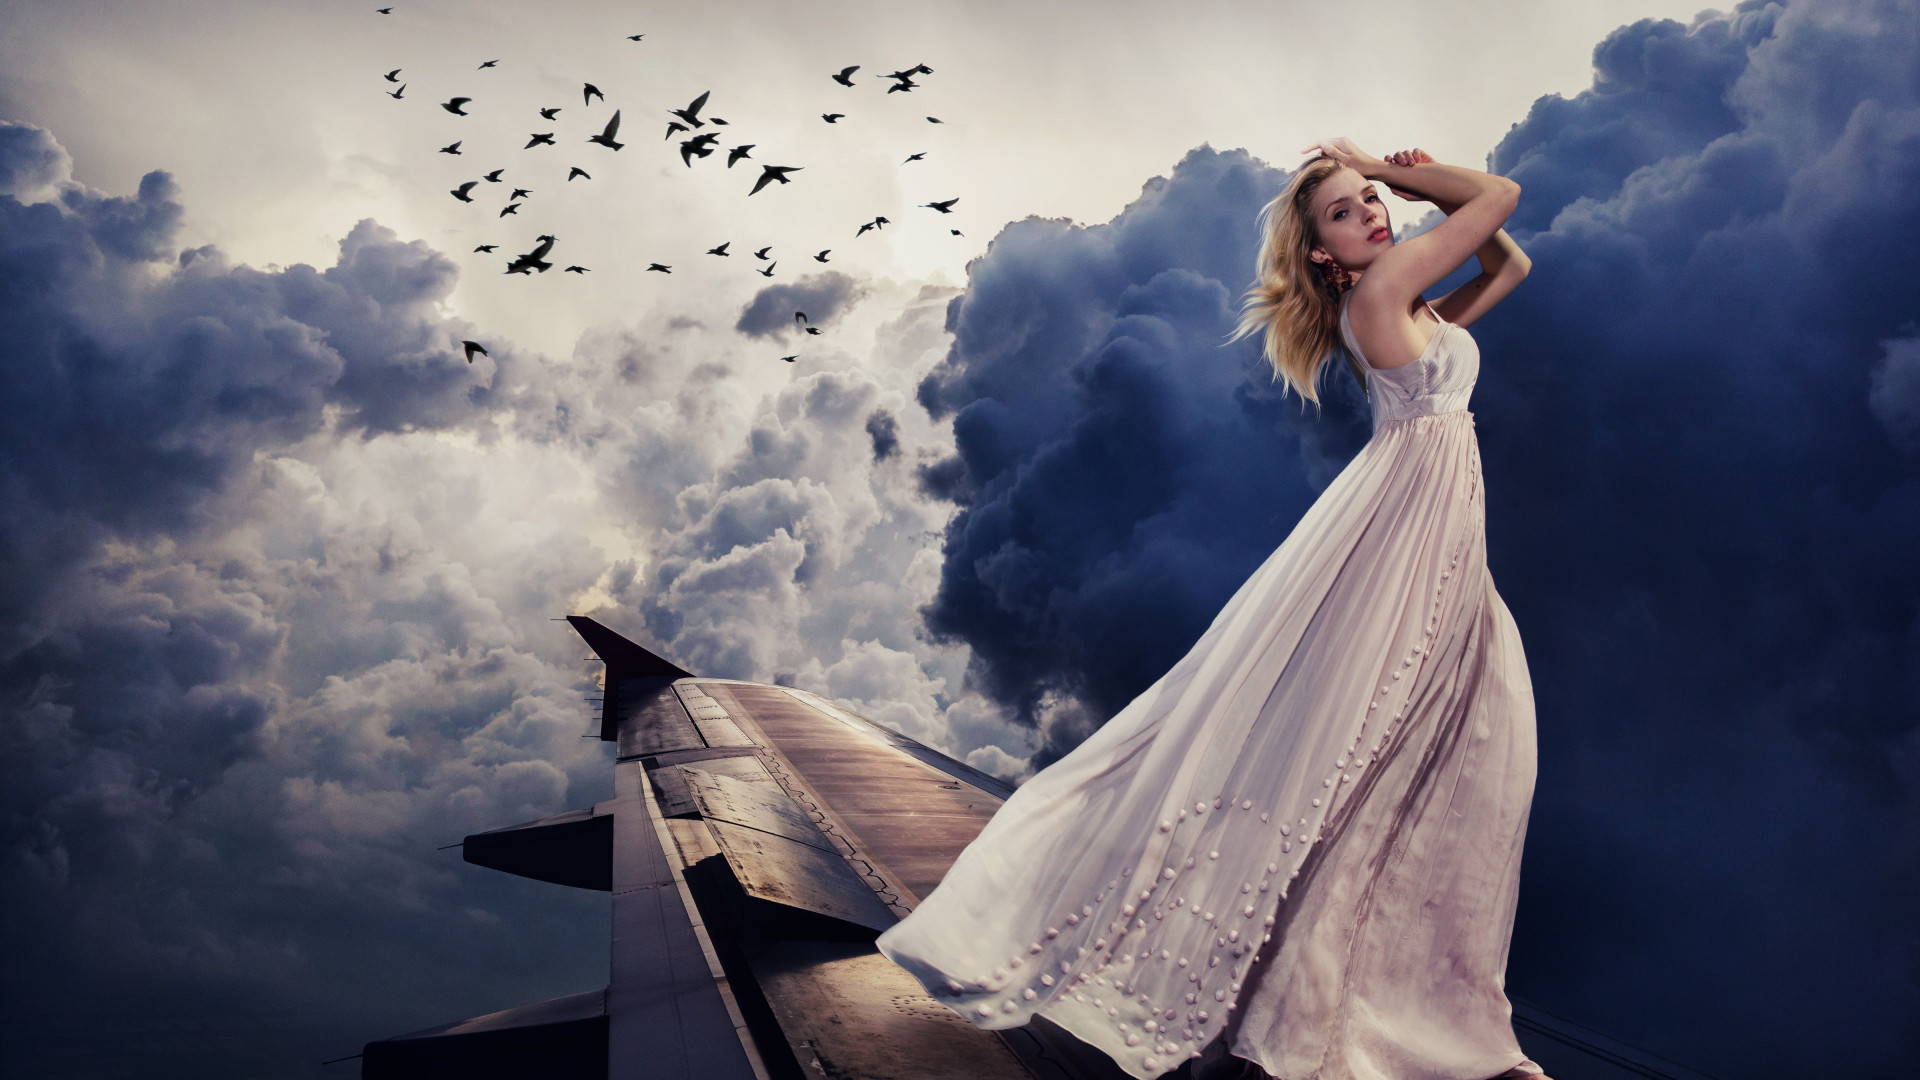 Beautiful girl on the airplane wing wallpaper 1920x1080